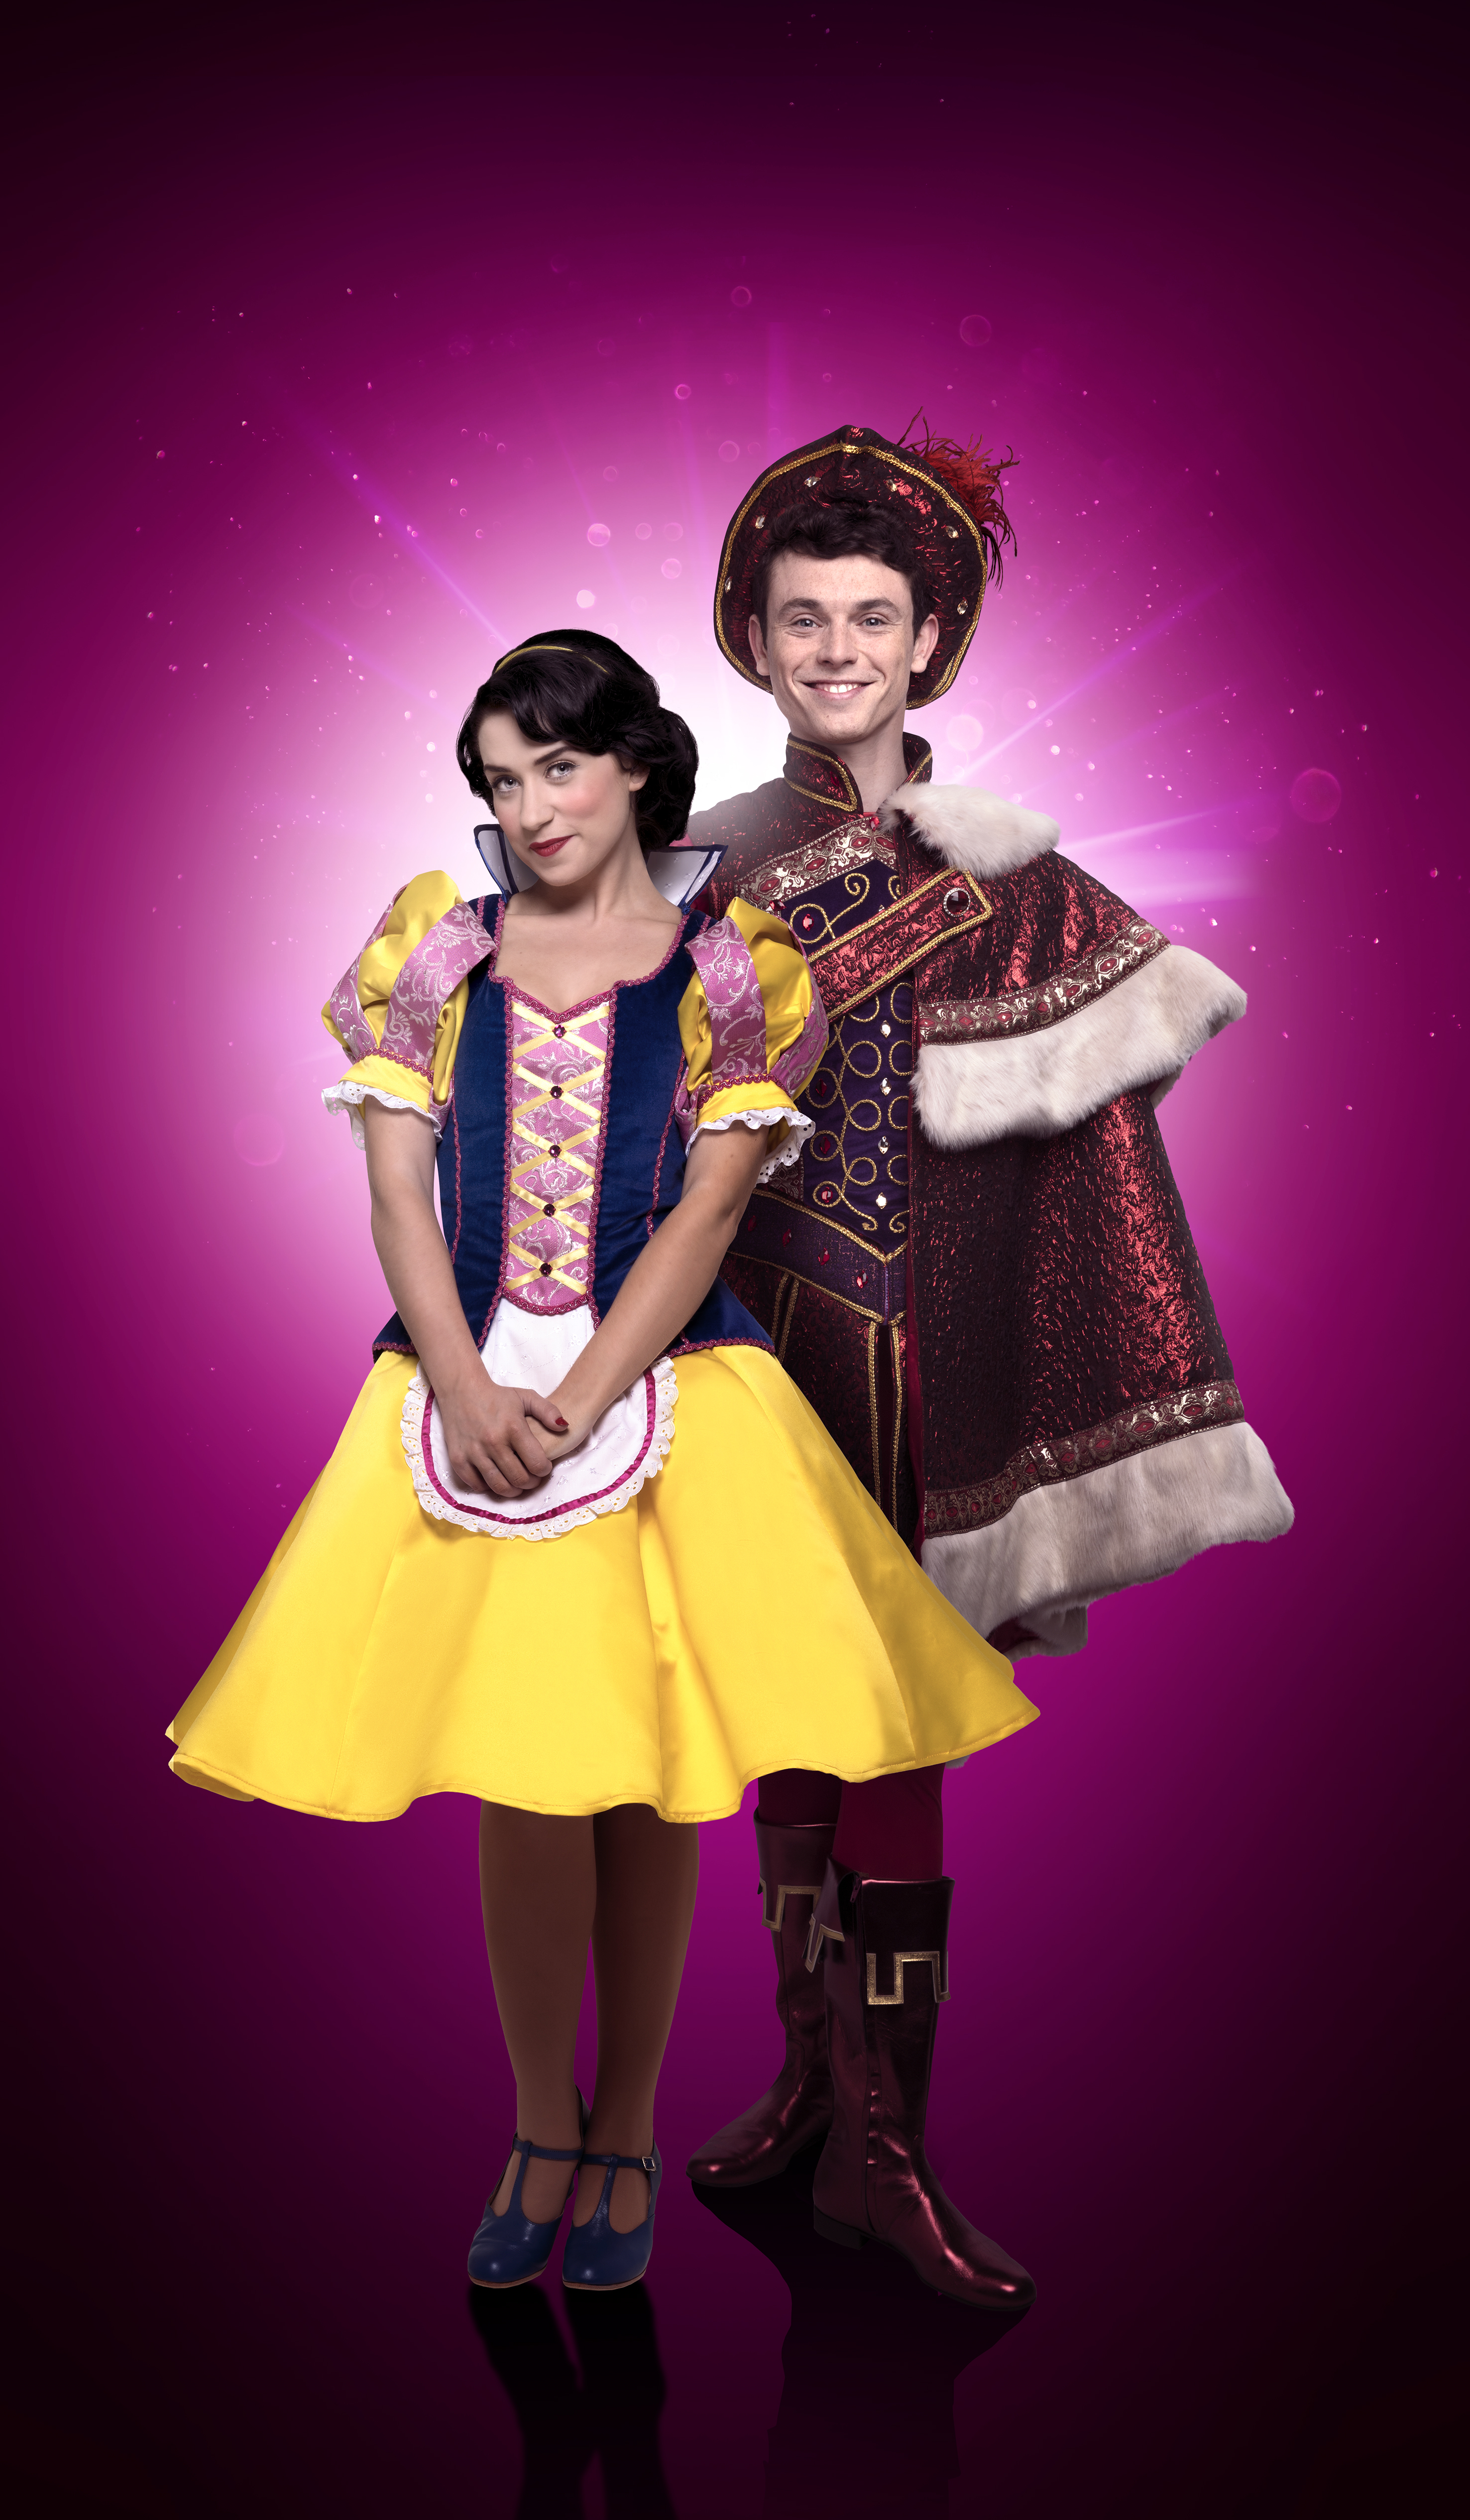 Charlie Stemp and Danielle Hope Join Snow White cast